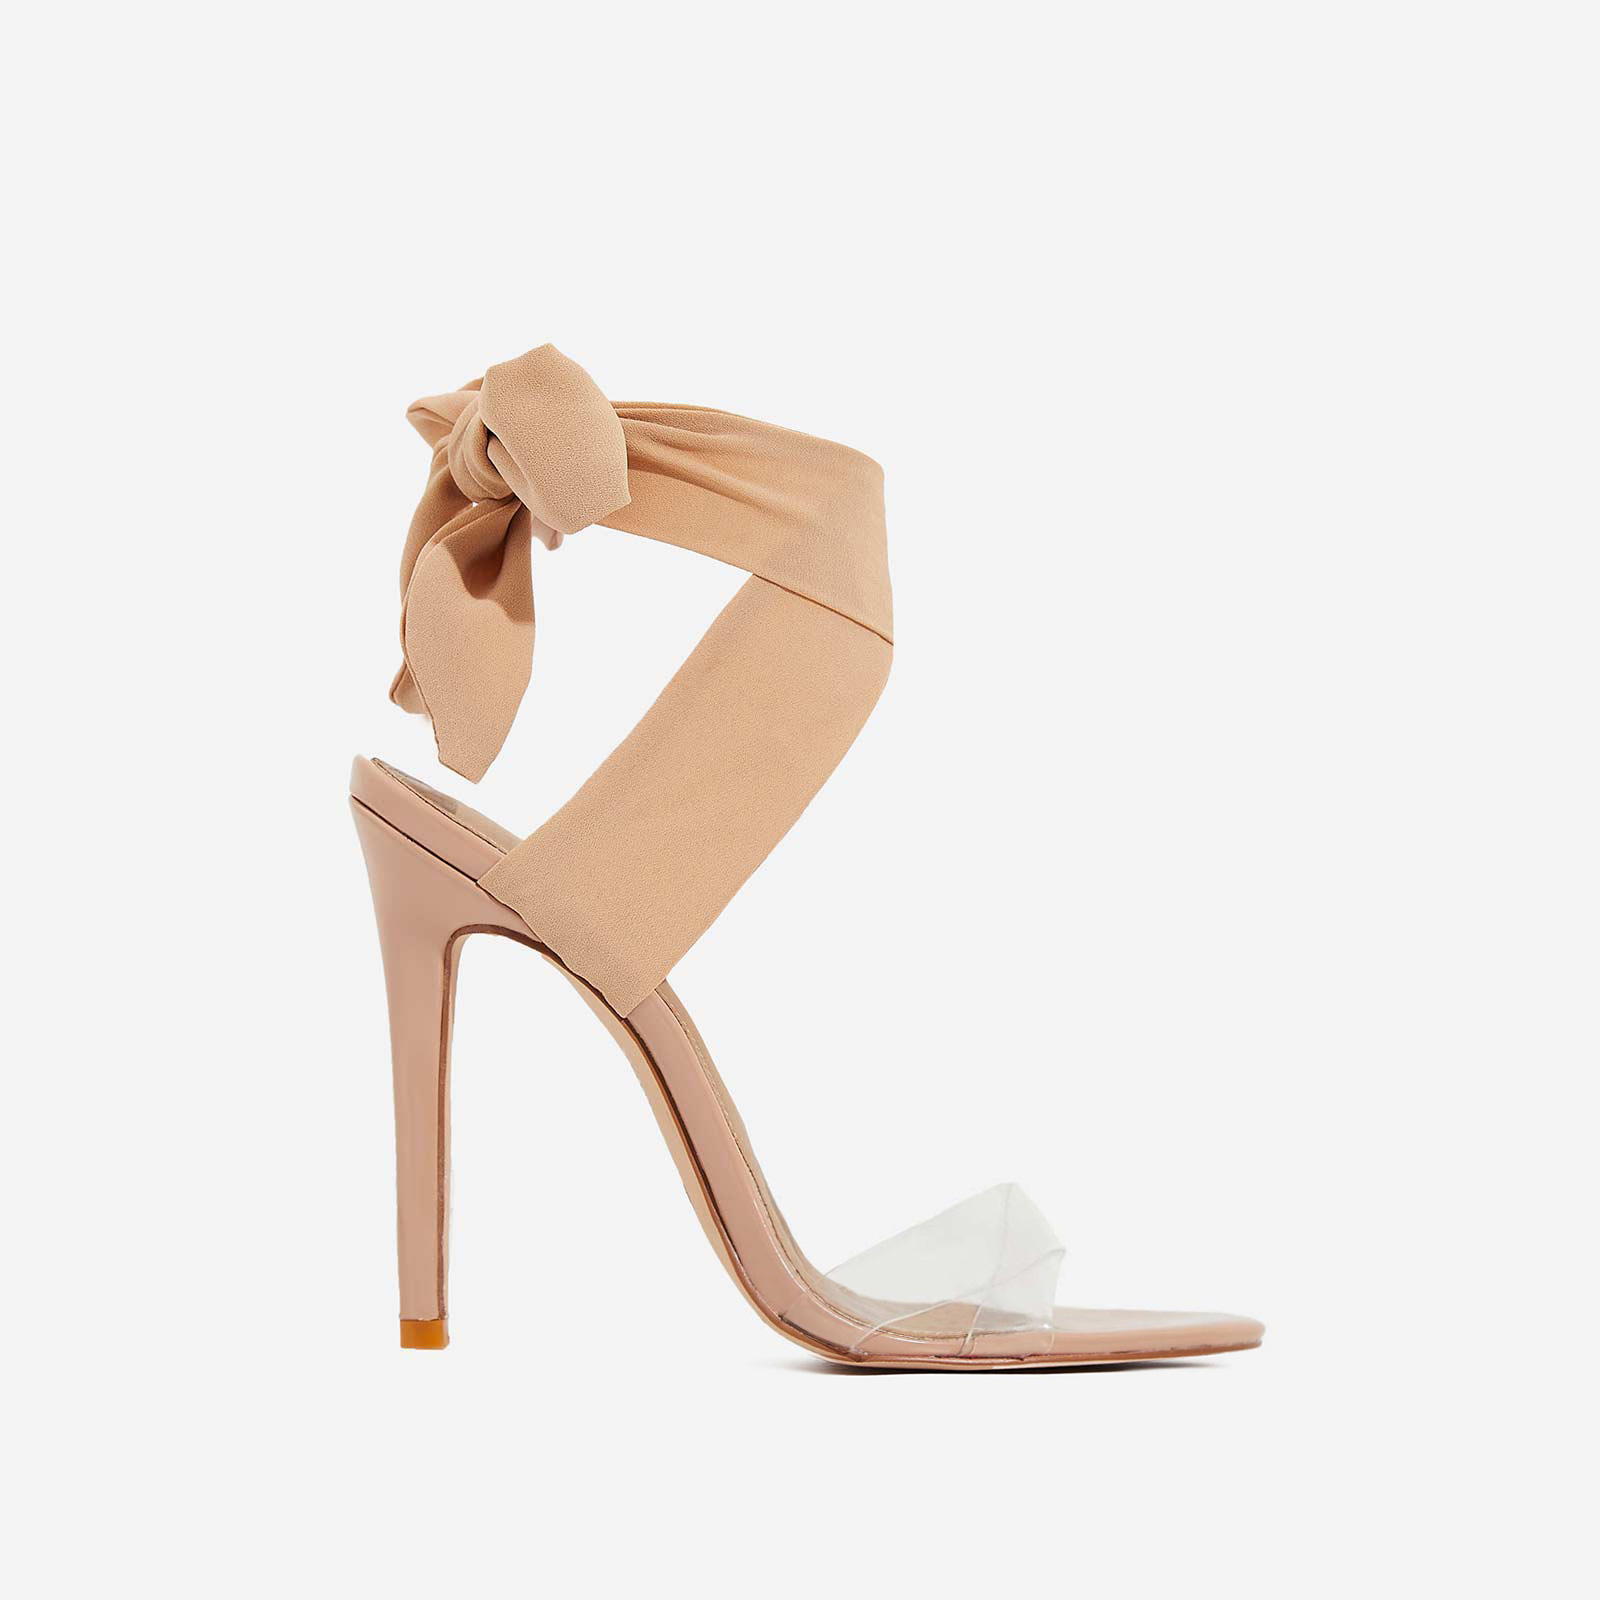 Zabi Ribbon Lace Up Perspex Heel In Nude Pat